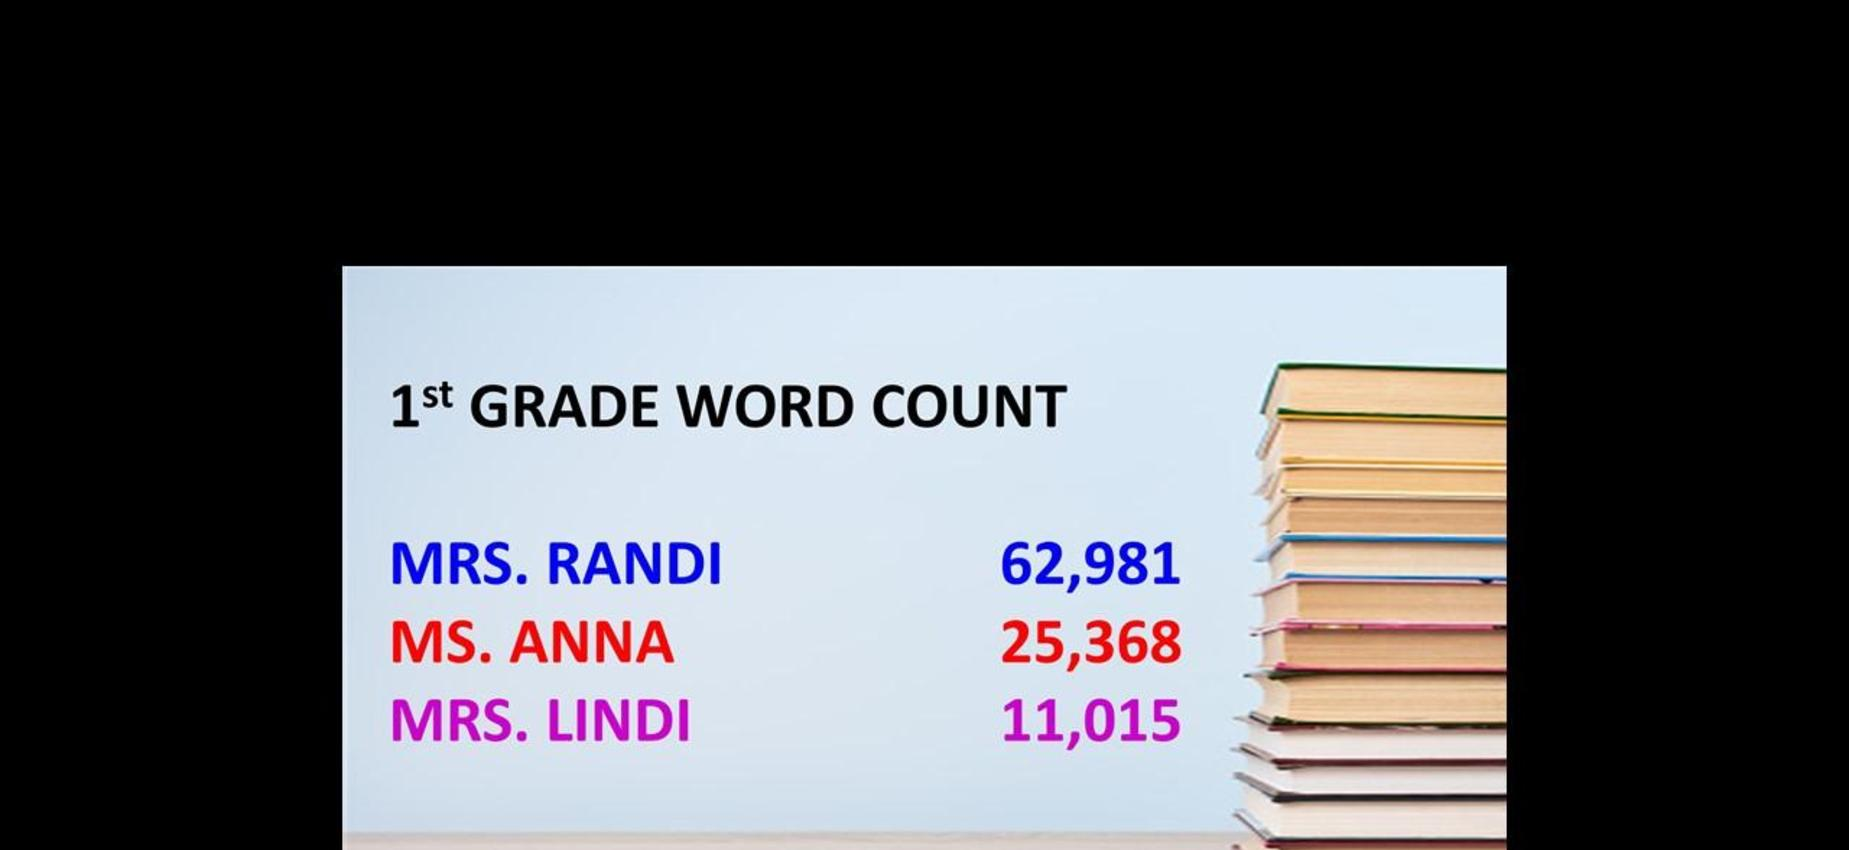 1st Grade Word Count